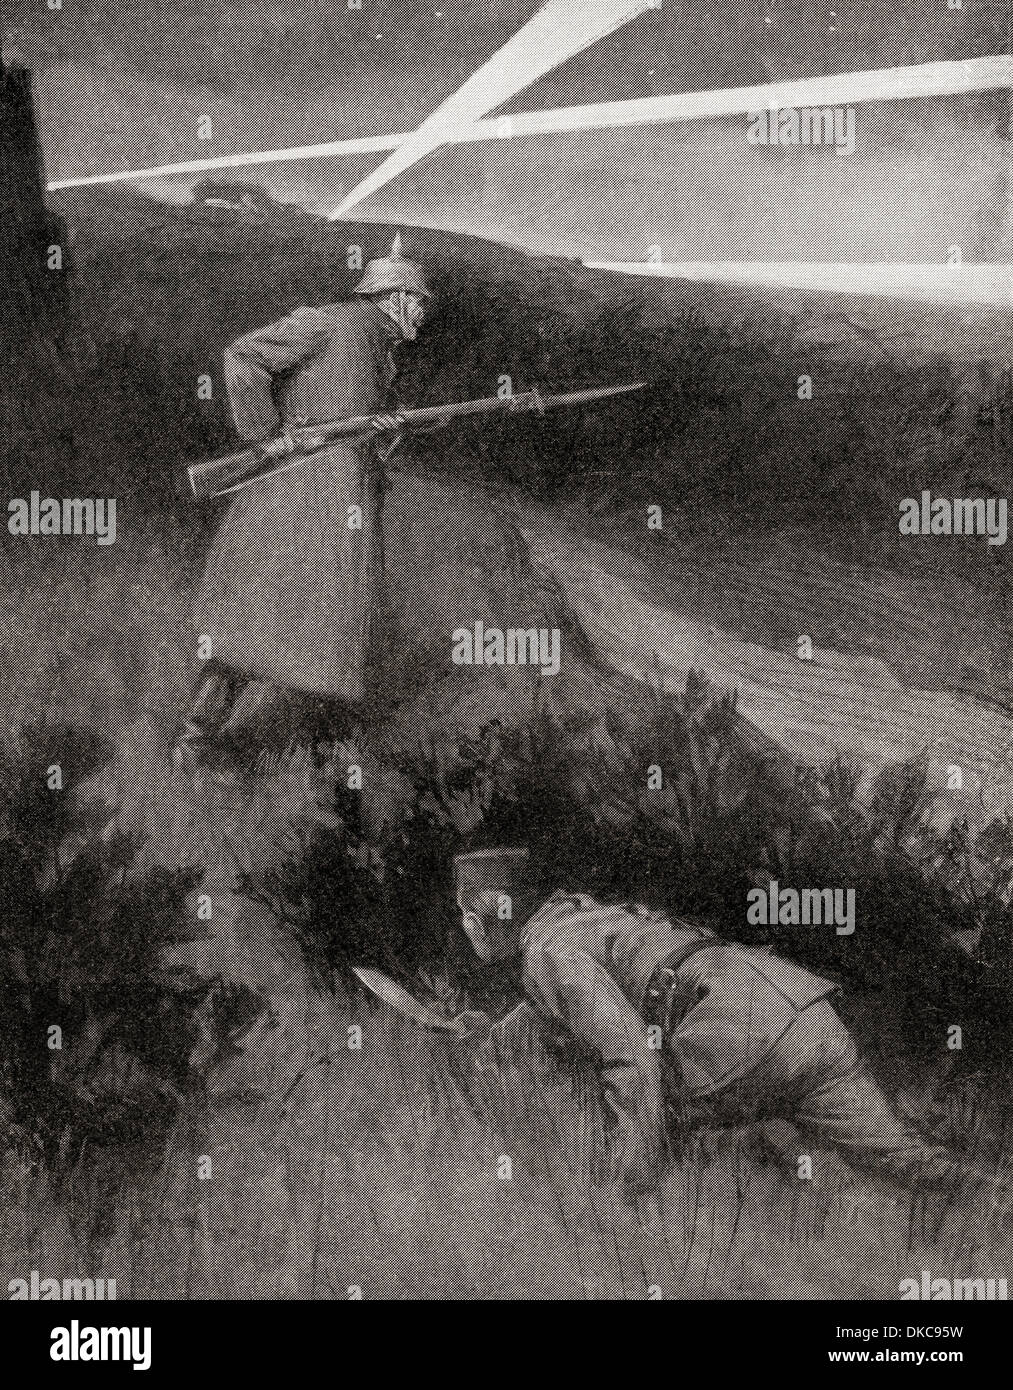 A Gurkha, Indian allies during World War One, creeps up on an unsuspecting German sentry. - Stock Image